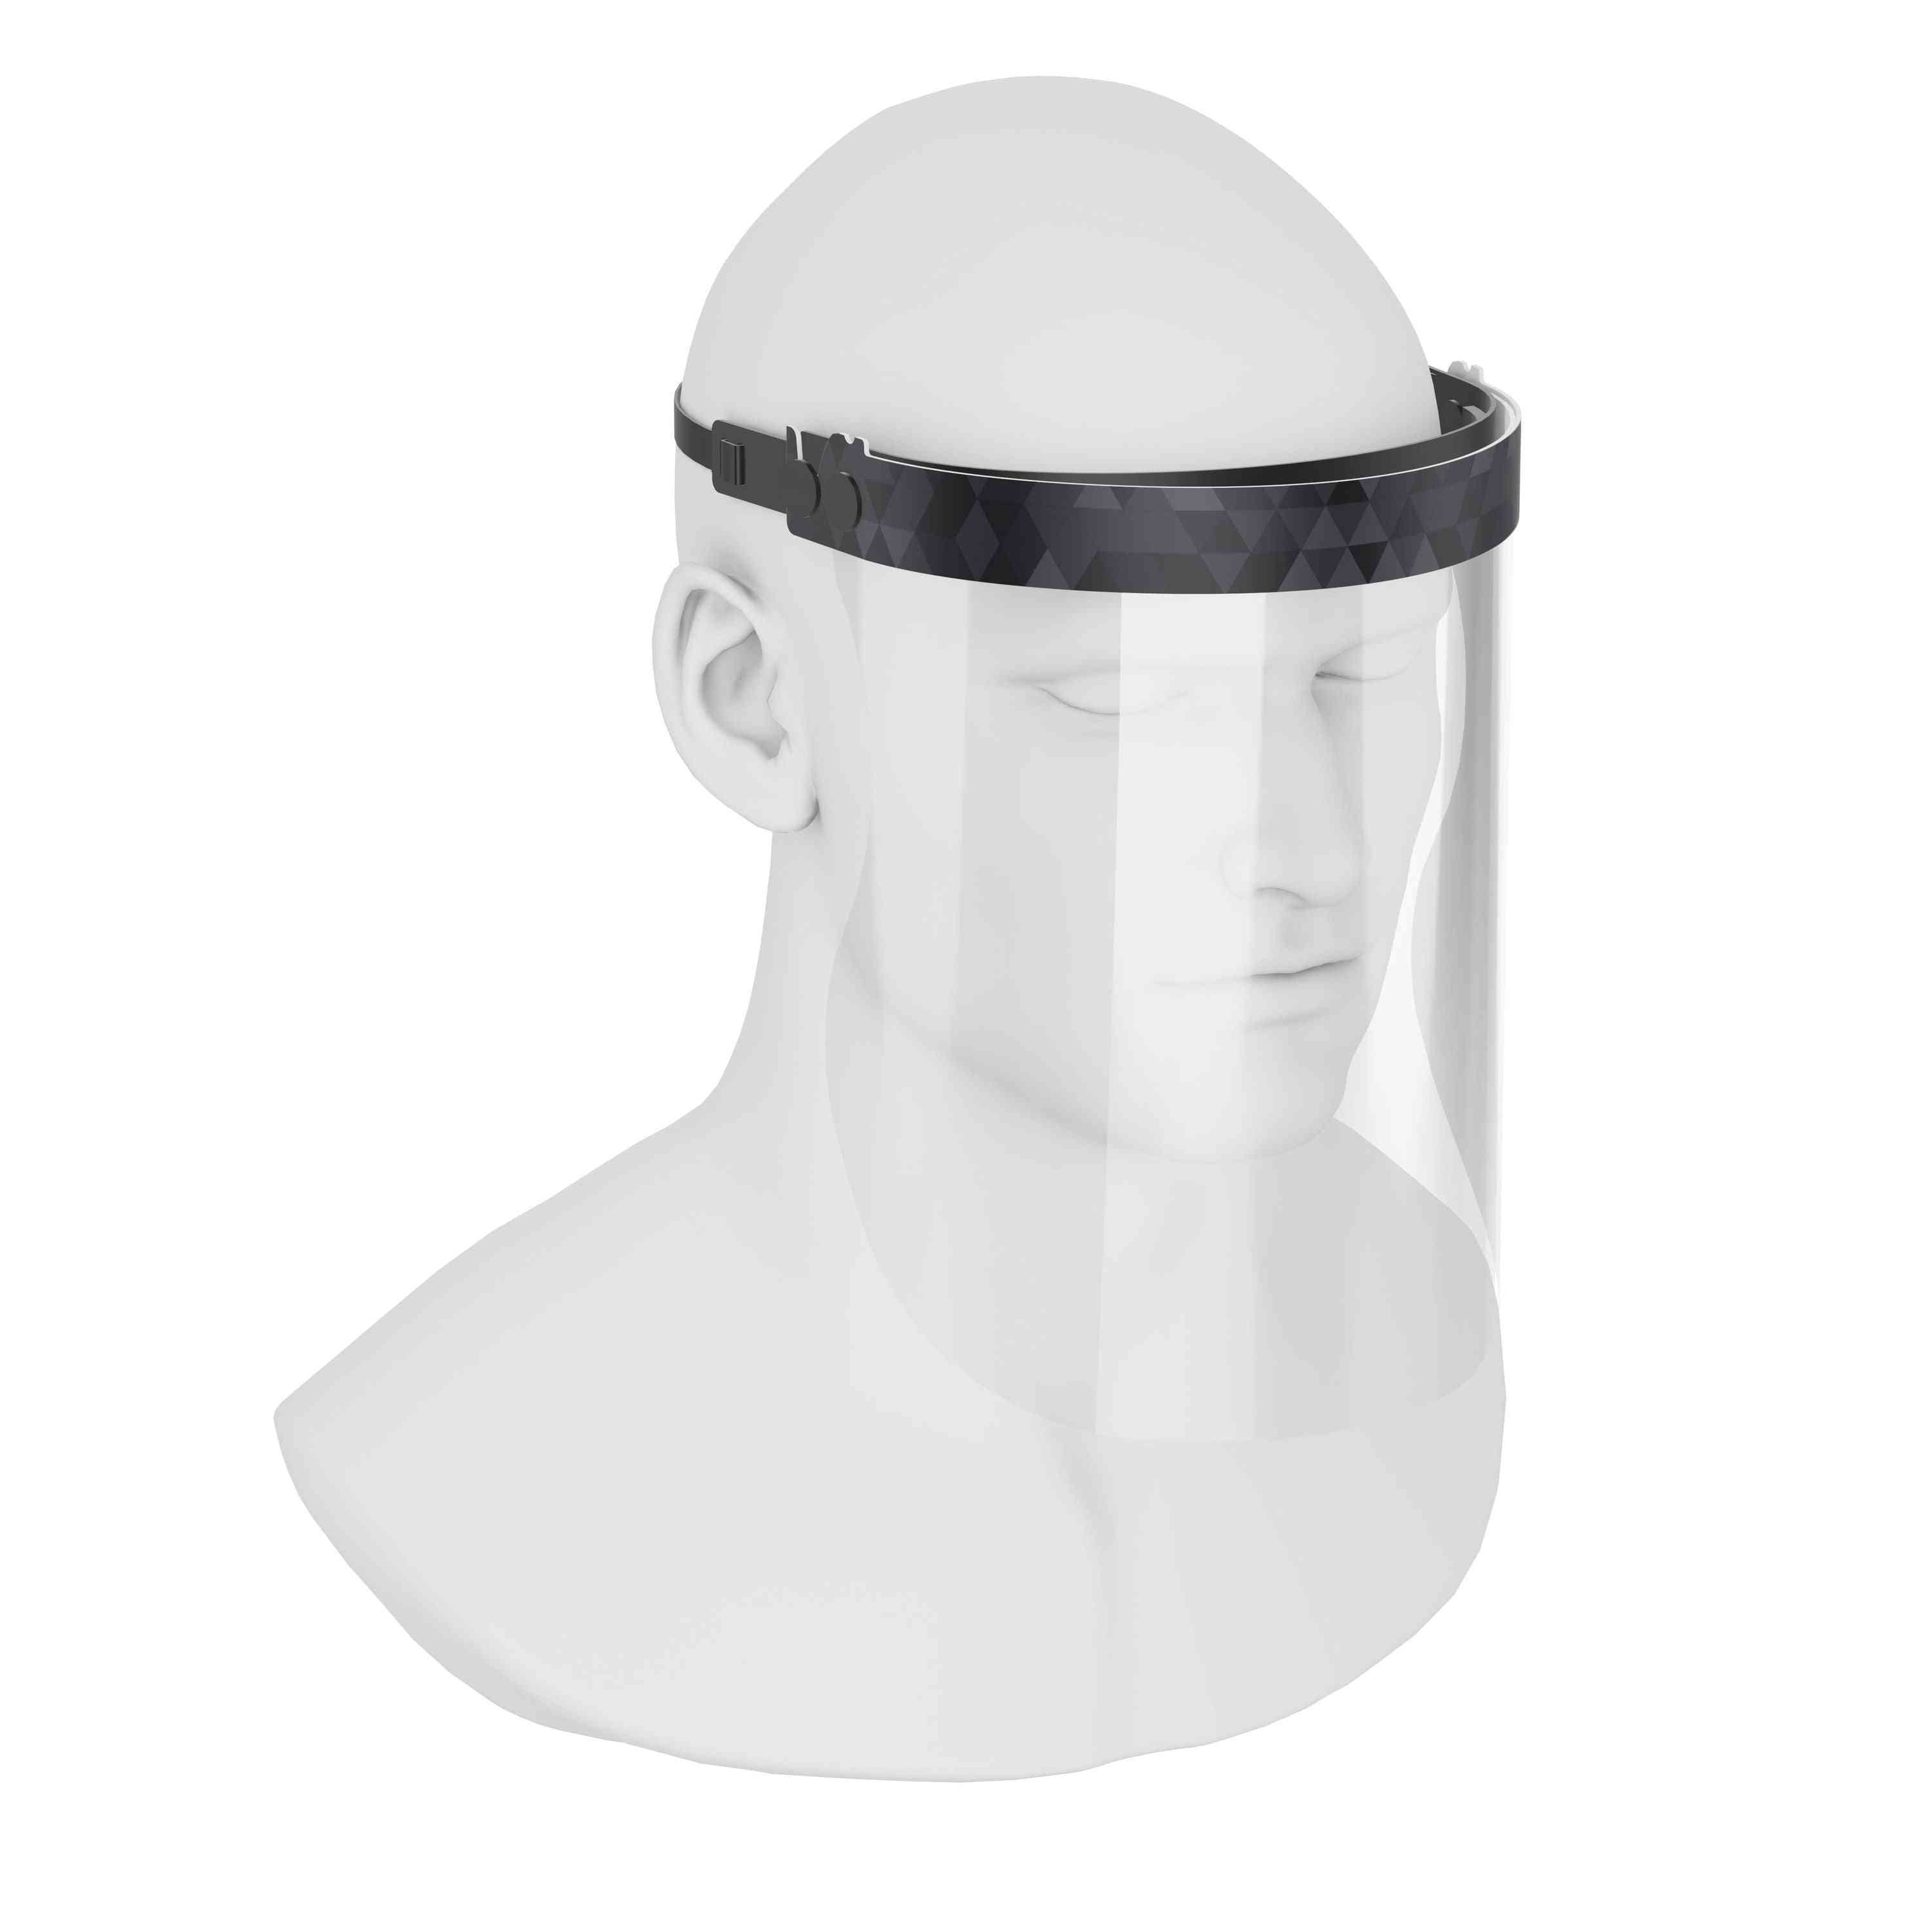 Isolay Face Shield Triangle Of Black Shades